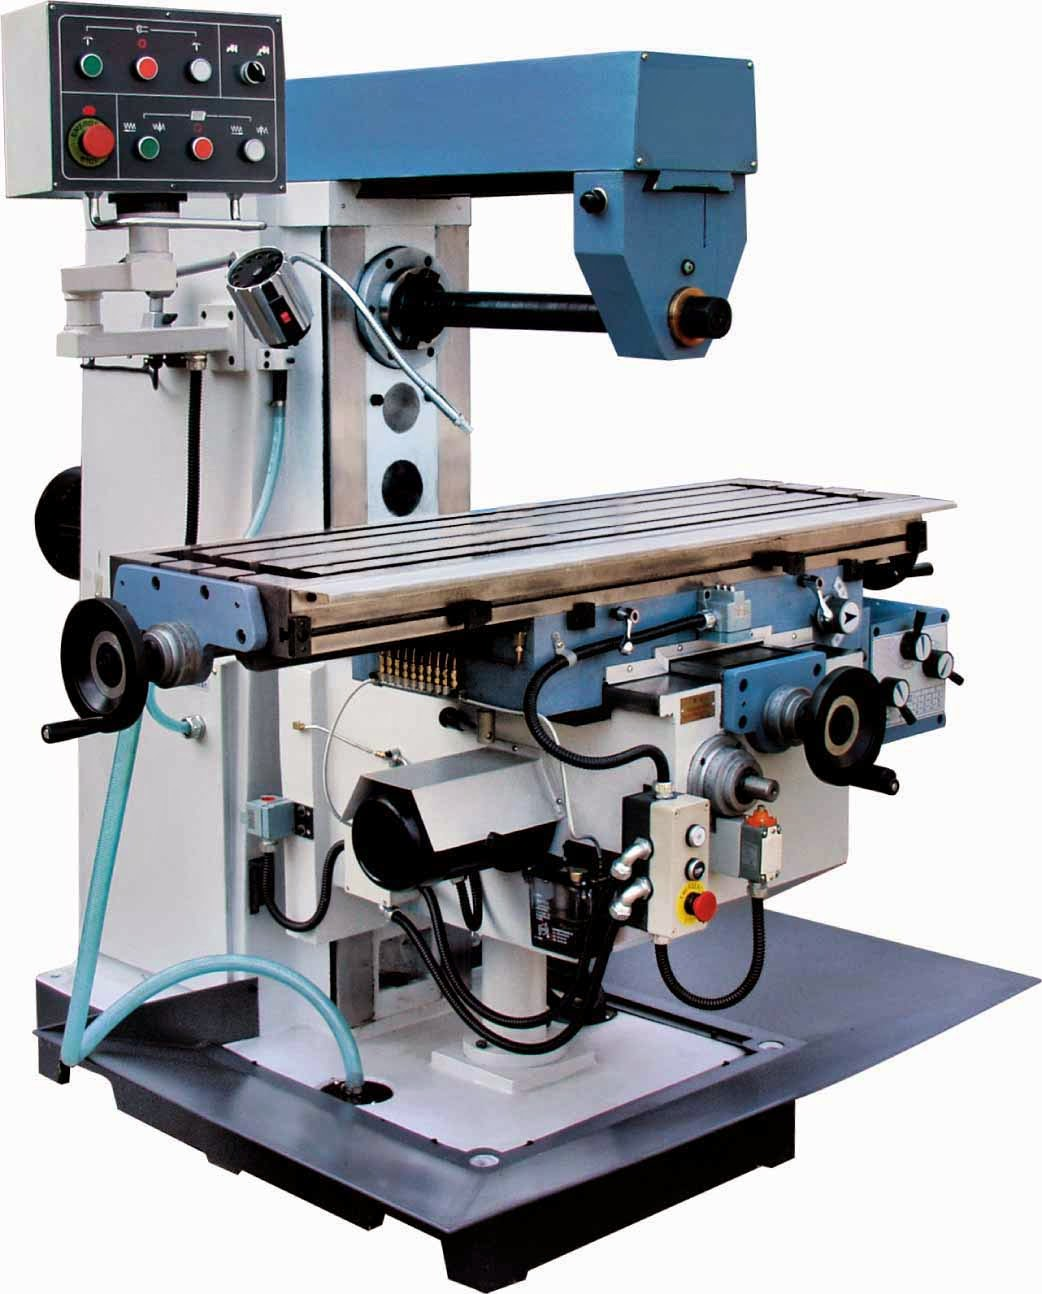 Real-Horizontal milling machine